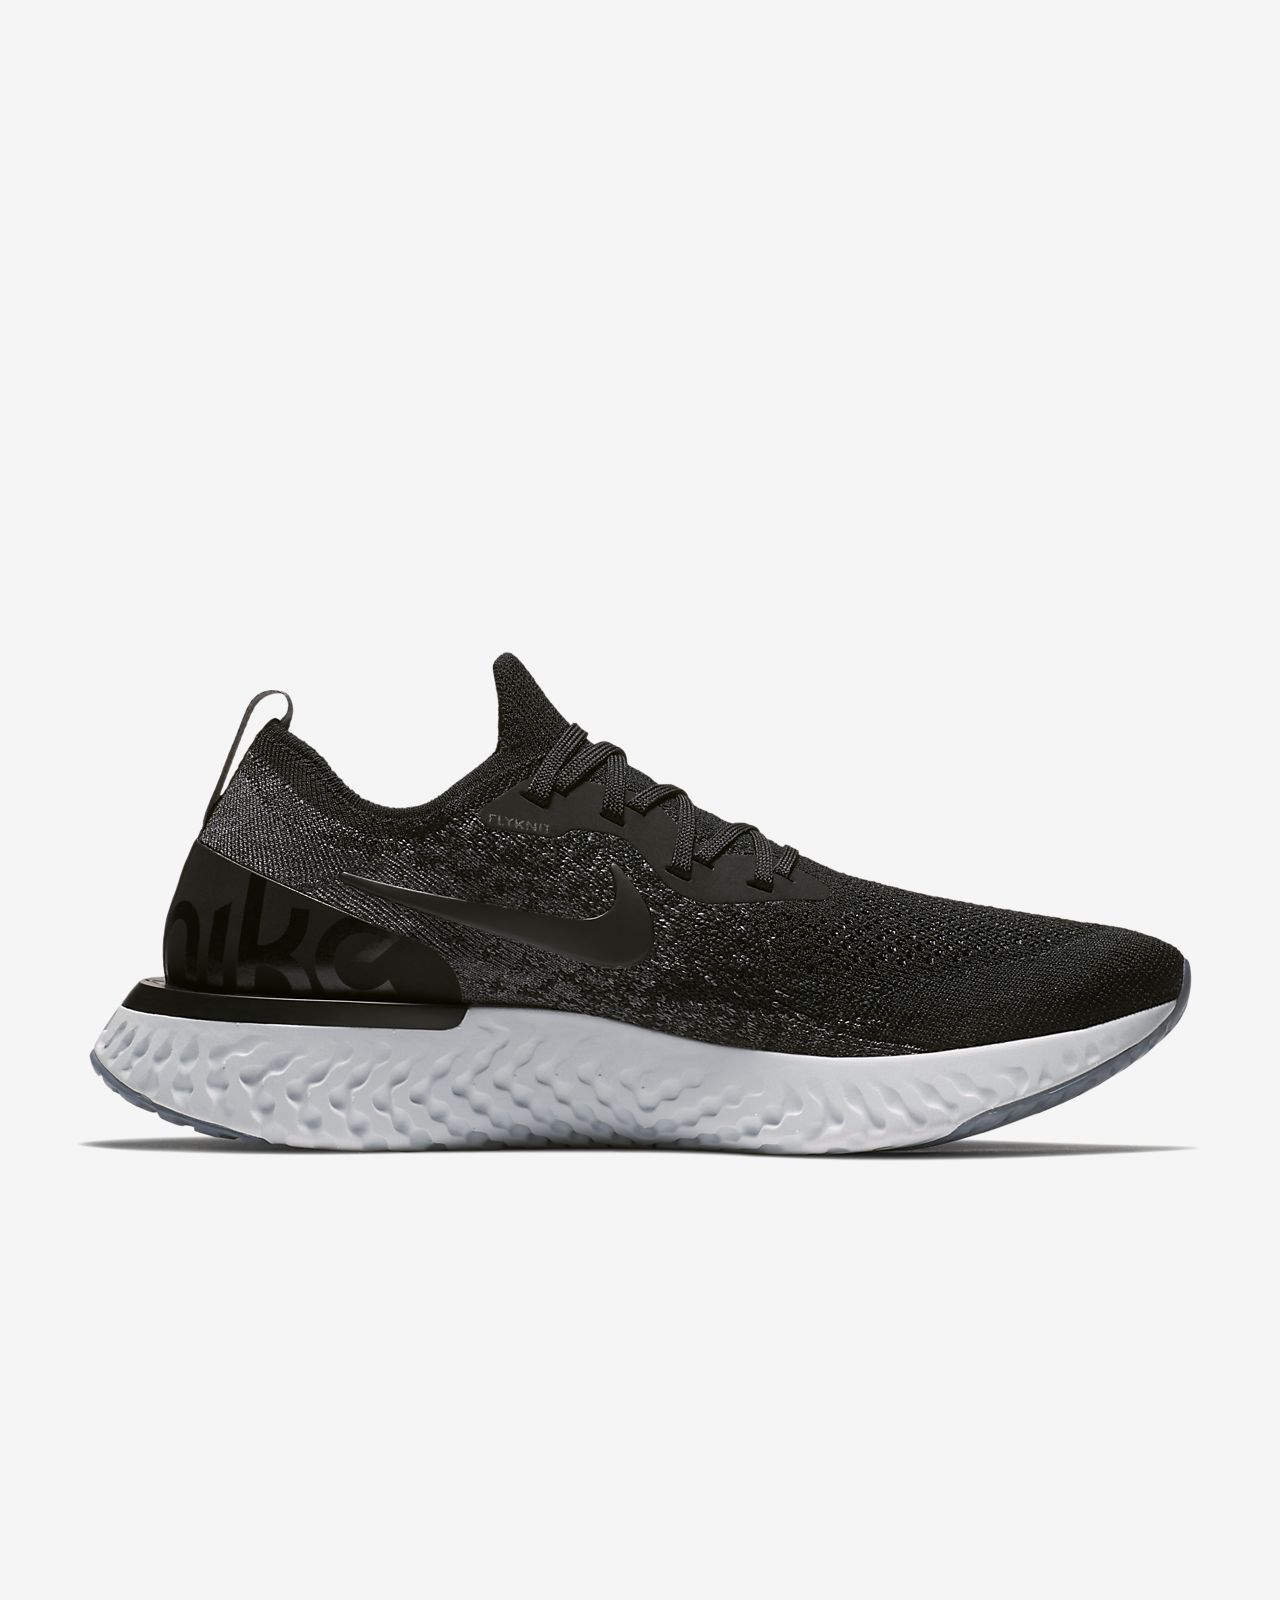 Details about Nike Lunaracer 2 Trainers Running Gym Casual Shoes Size 7 41